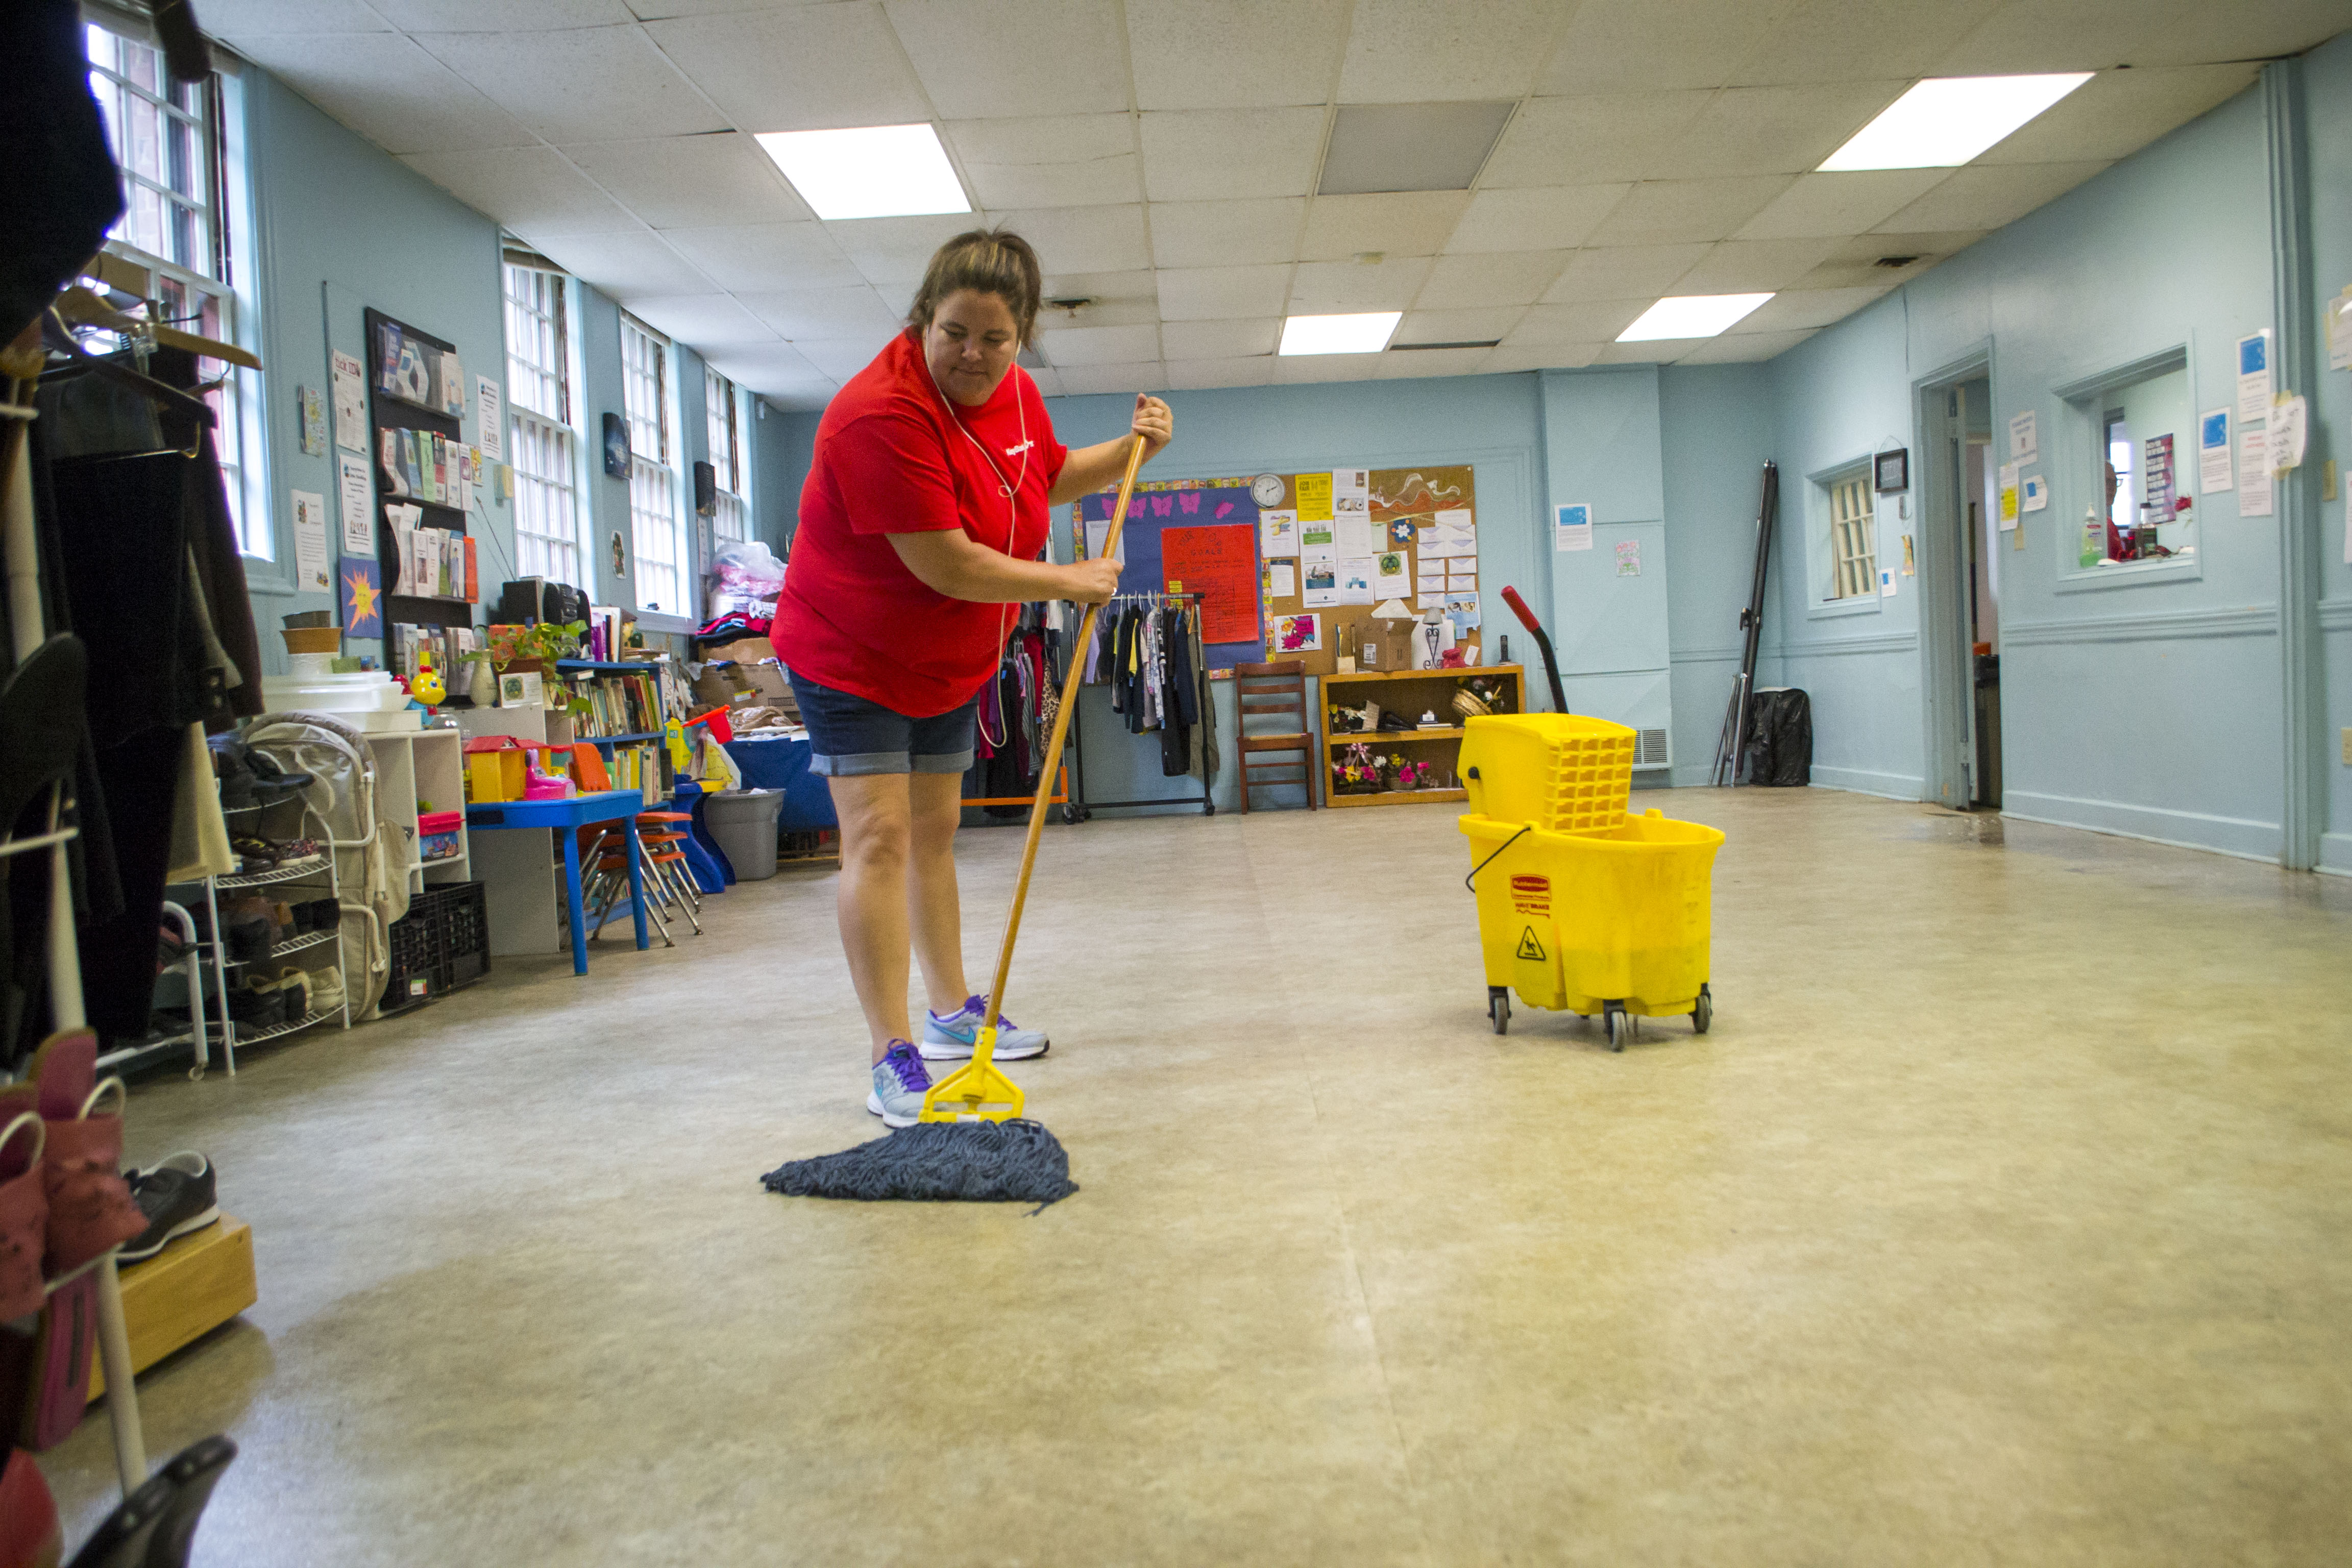 Saco KeyBank employee Michelle Lemelin mops the floors of Biddeford's Seeds of Hope Neighborhood Center as part of statewide efforts for bank employees to give back to their communities Wednesday. ALAN BENNETT/Journal Tribune